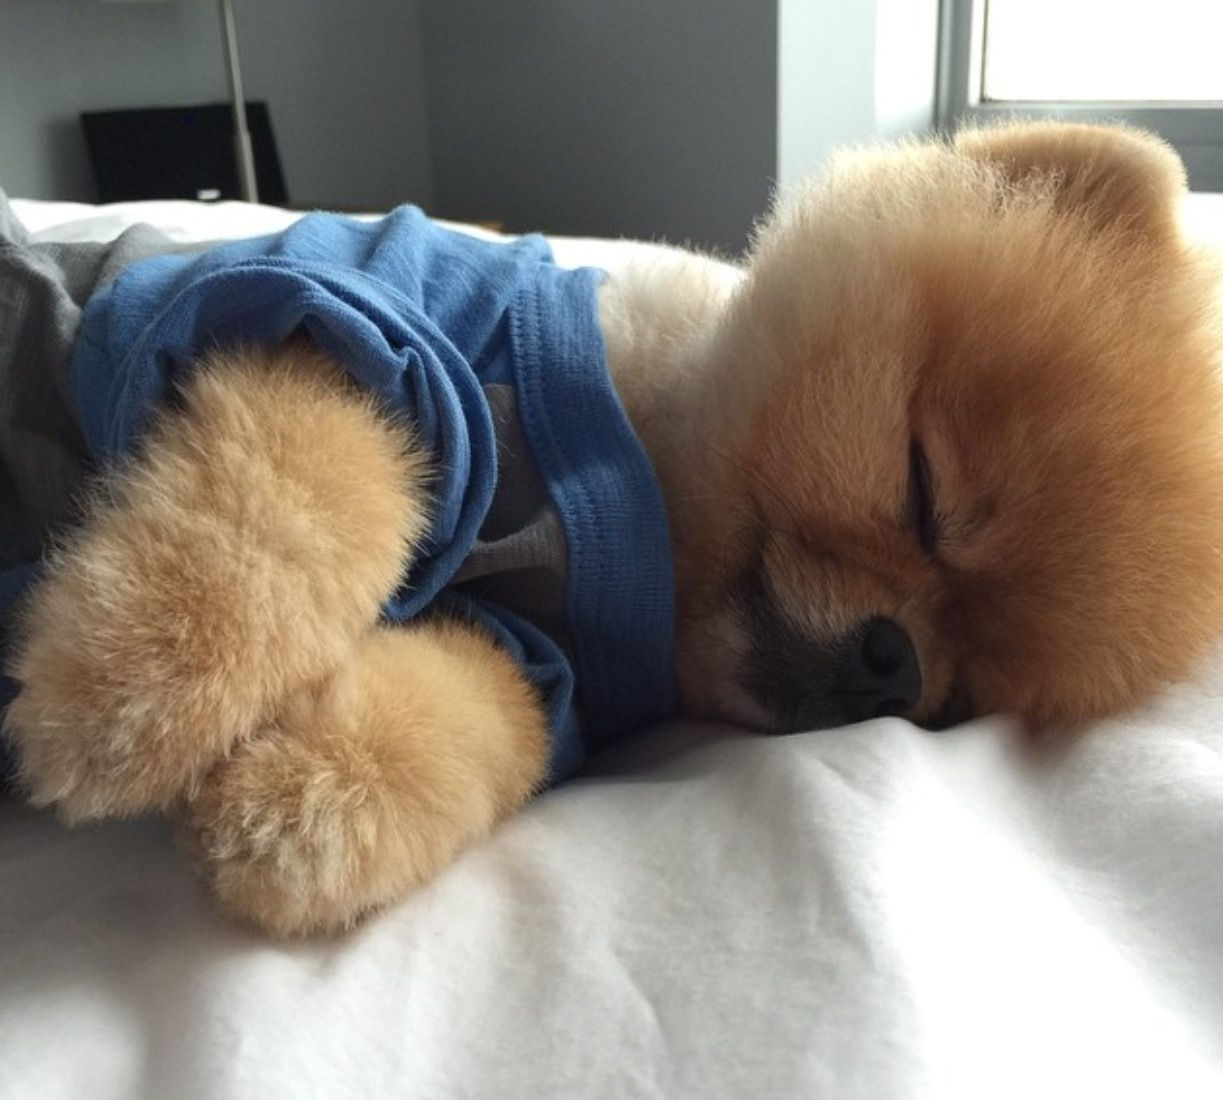 Pomeranian Bold And Inquisitive Instagram Pomeranians And Dog - Jiff the pomeranian is easily the best dressed model on instagram